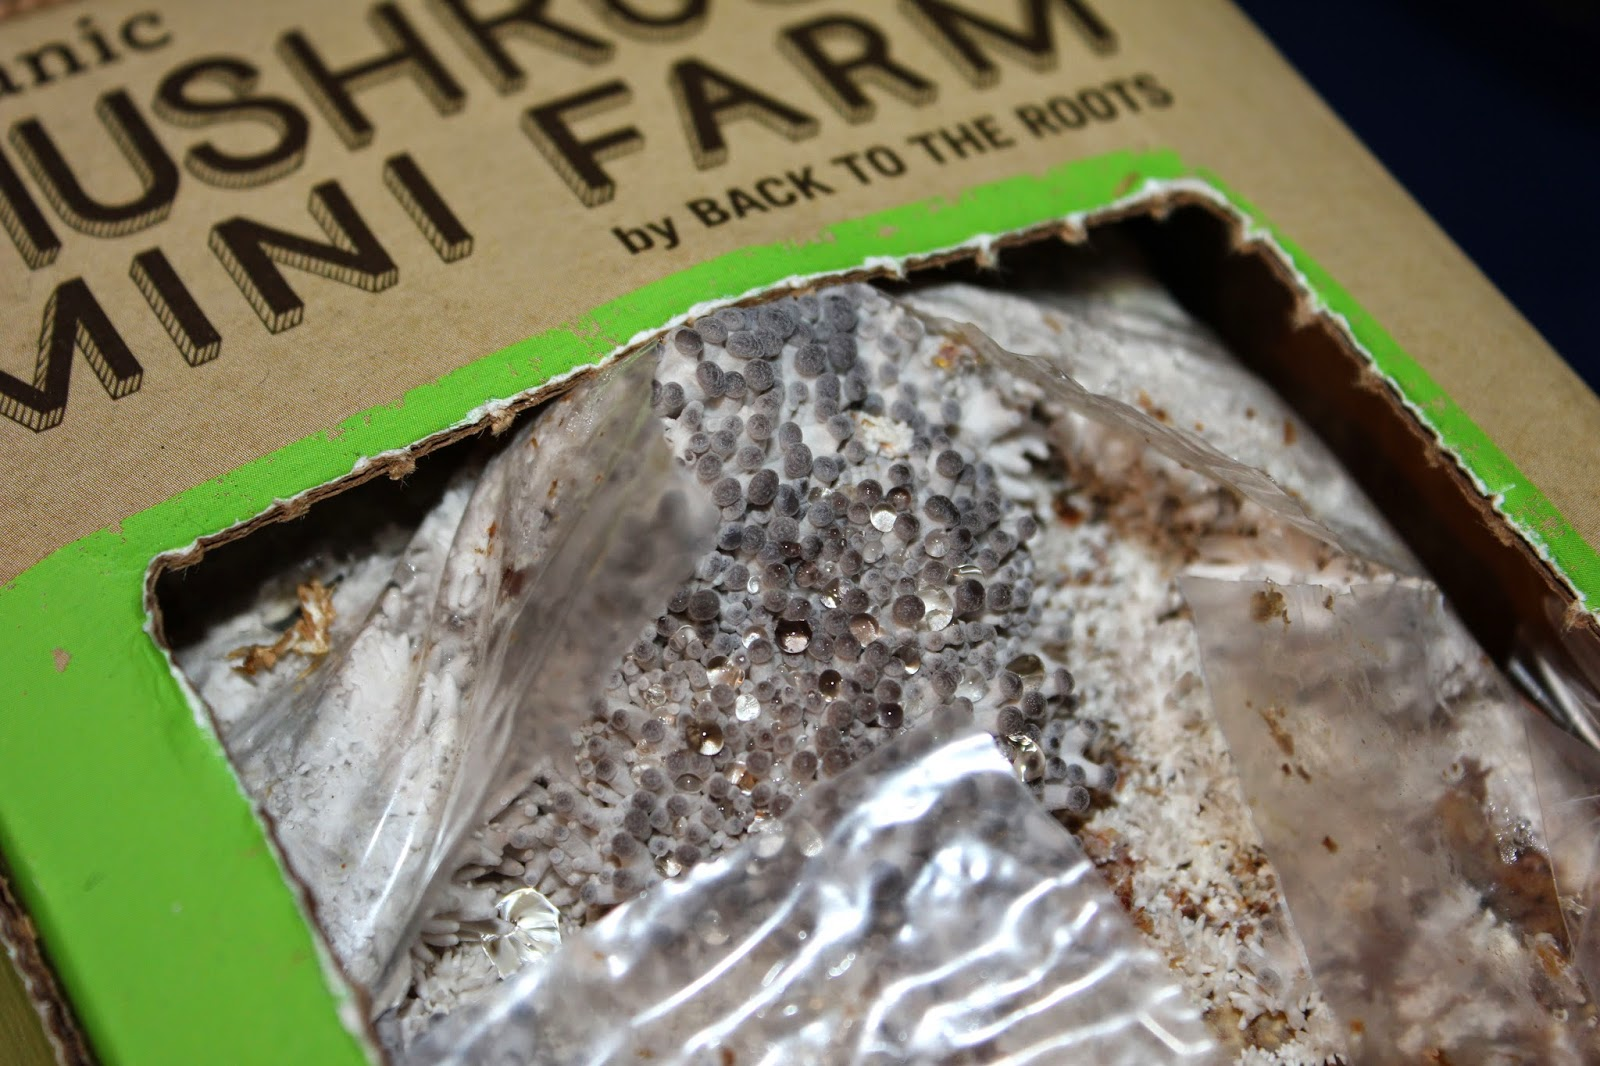 Back to the roots oyster mushroom kit - Things to do for